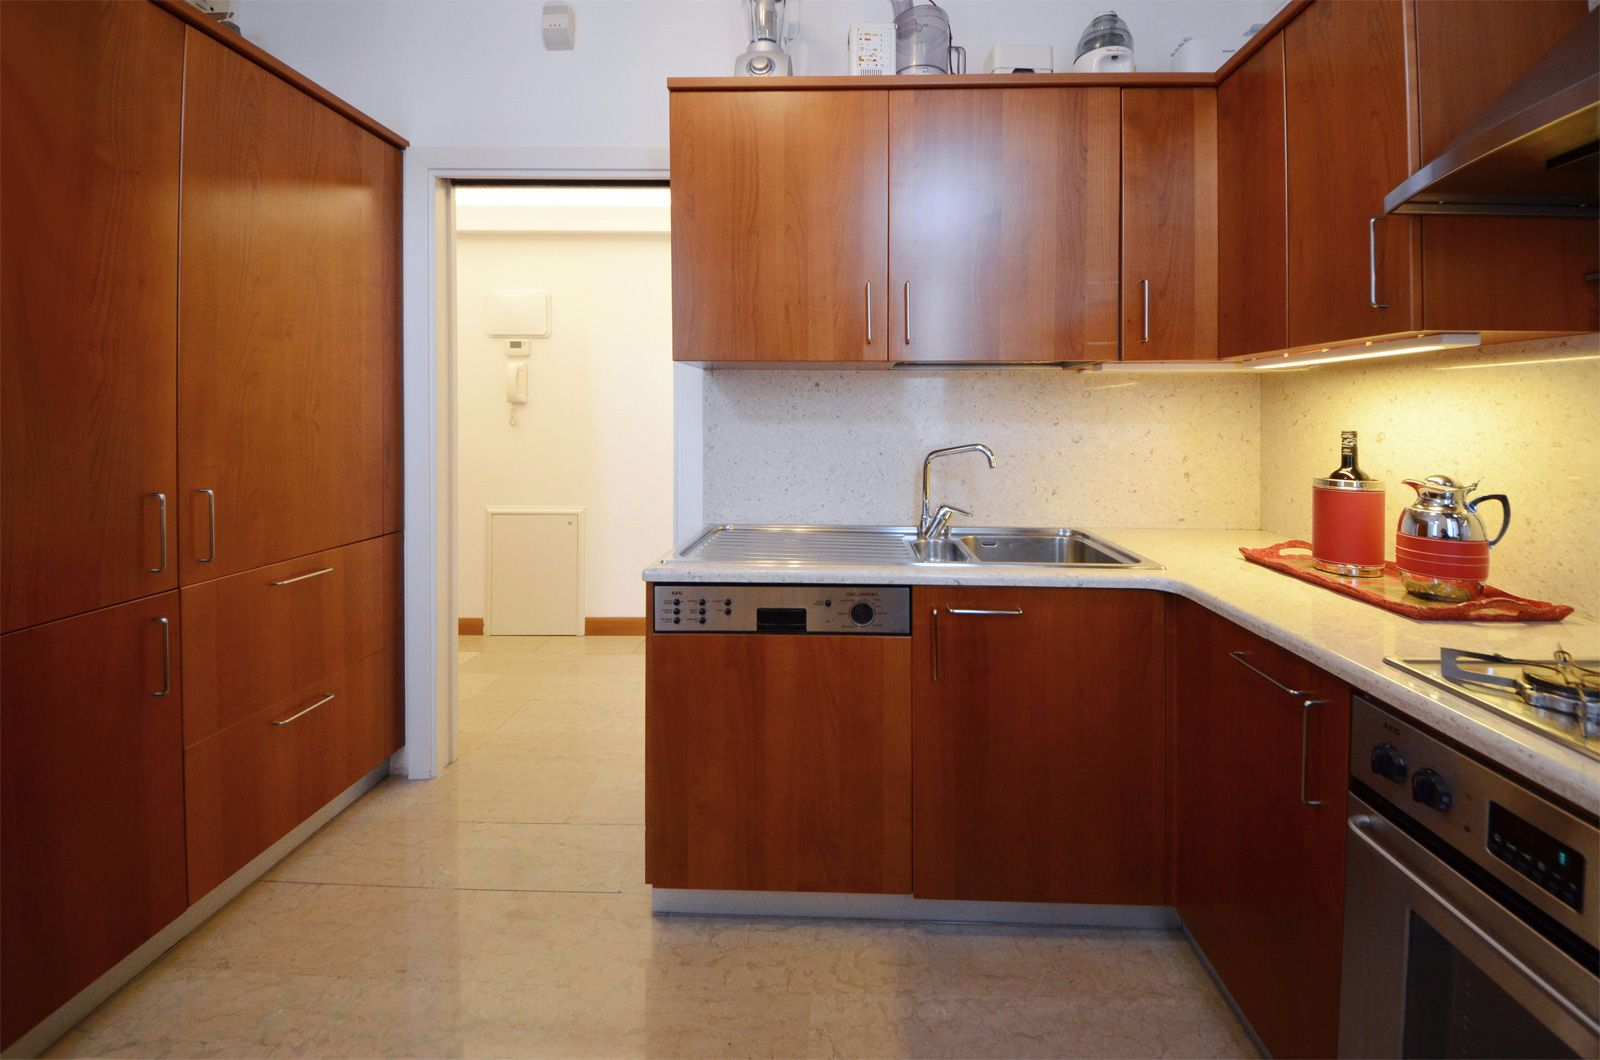 fully equipped kitchen with small breakfast table